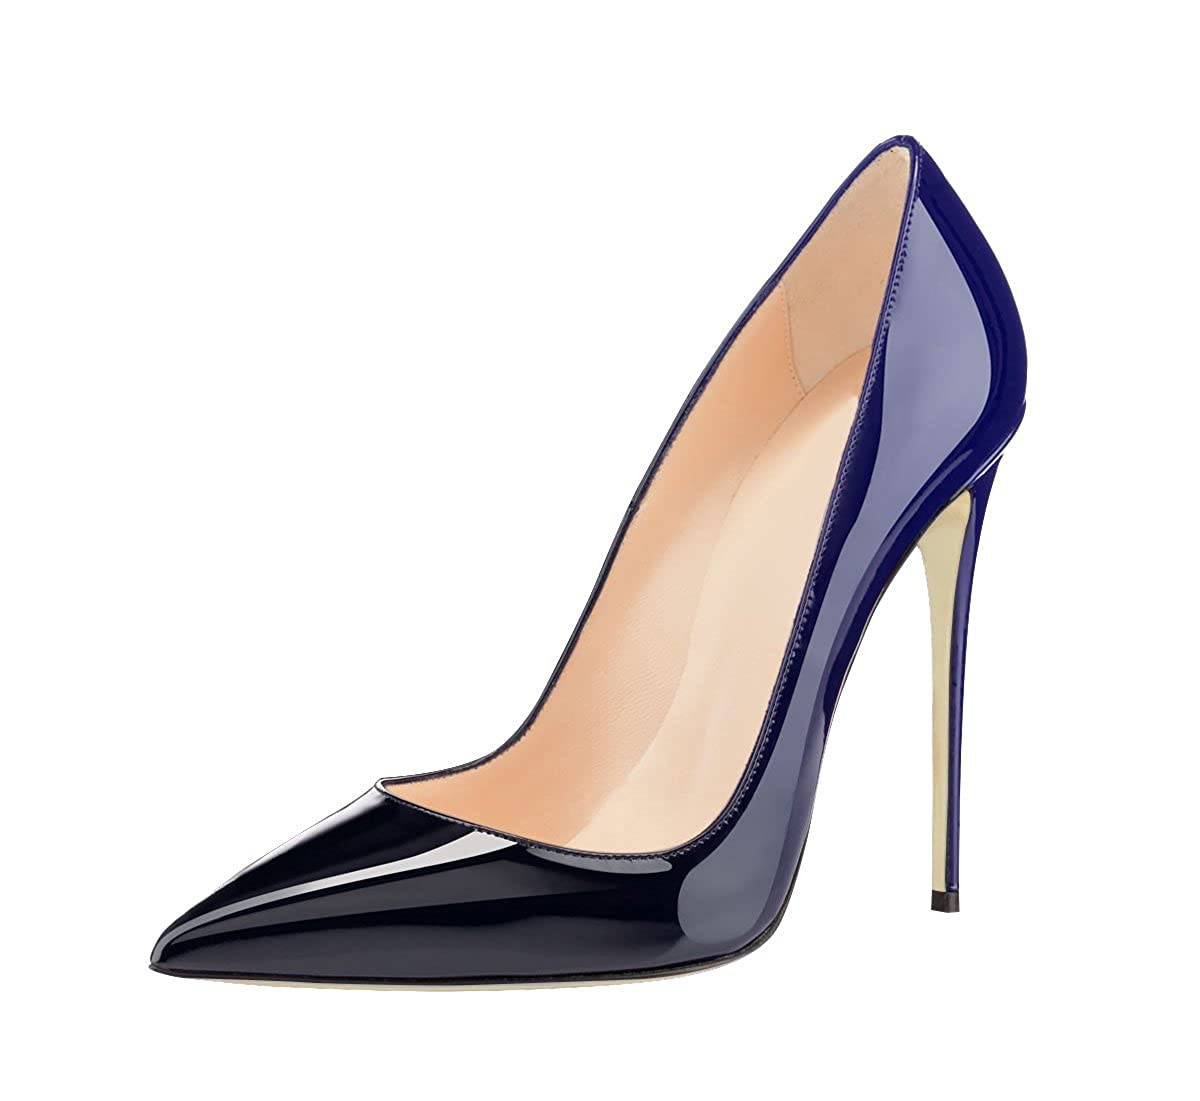 Ranbetty Women Pointed Toe Stiletto High Heel Gradient Color Patent Leather Dress Pump Shoes